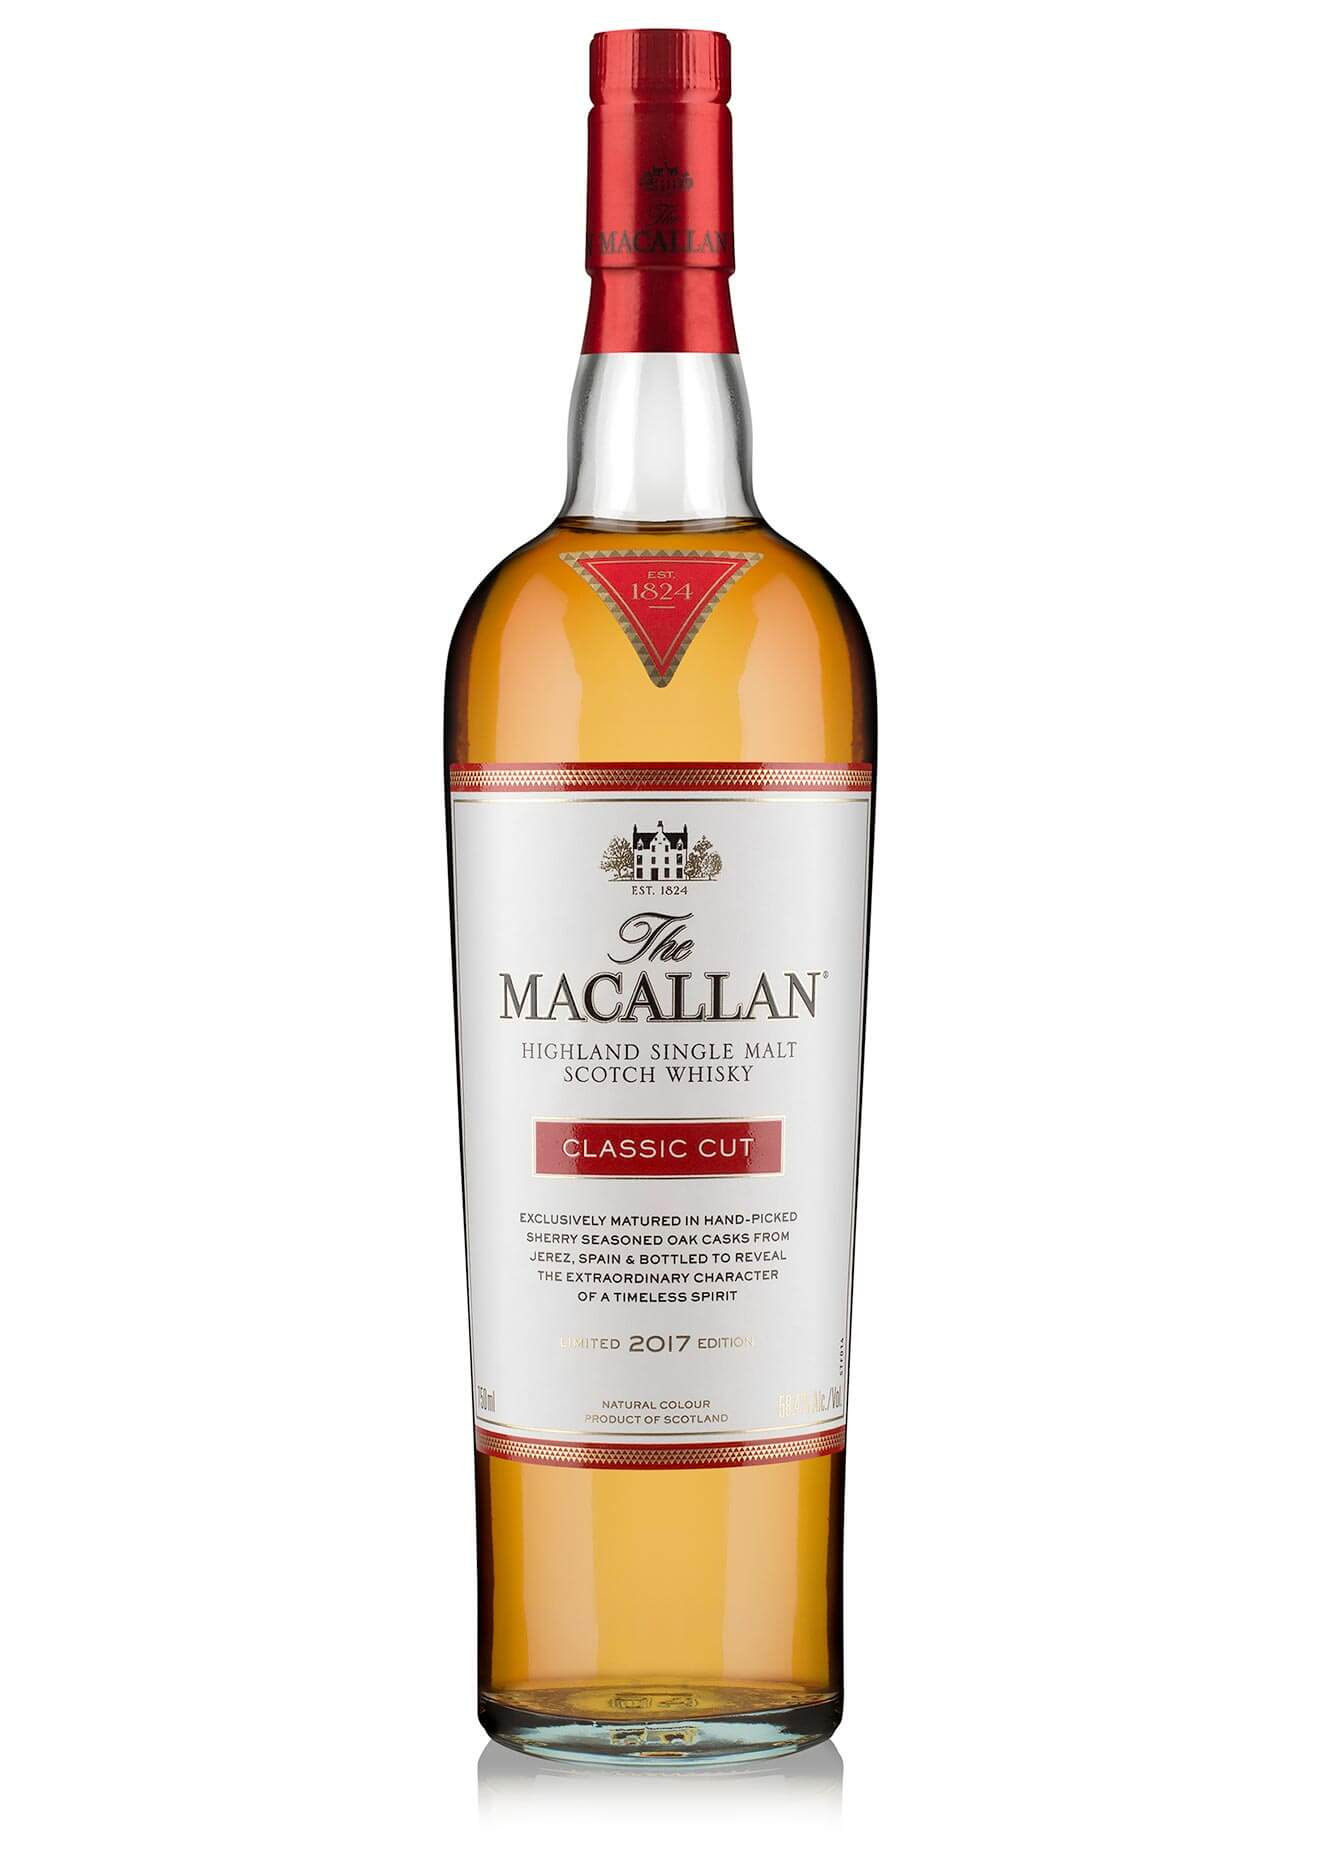 The Macallan Classic Cut, bottle on white